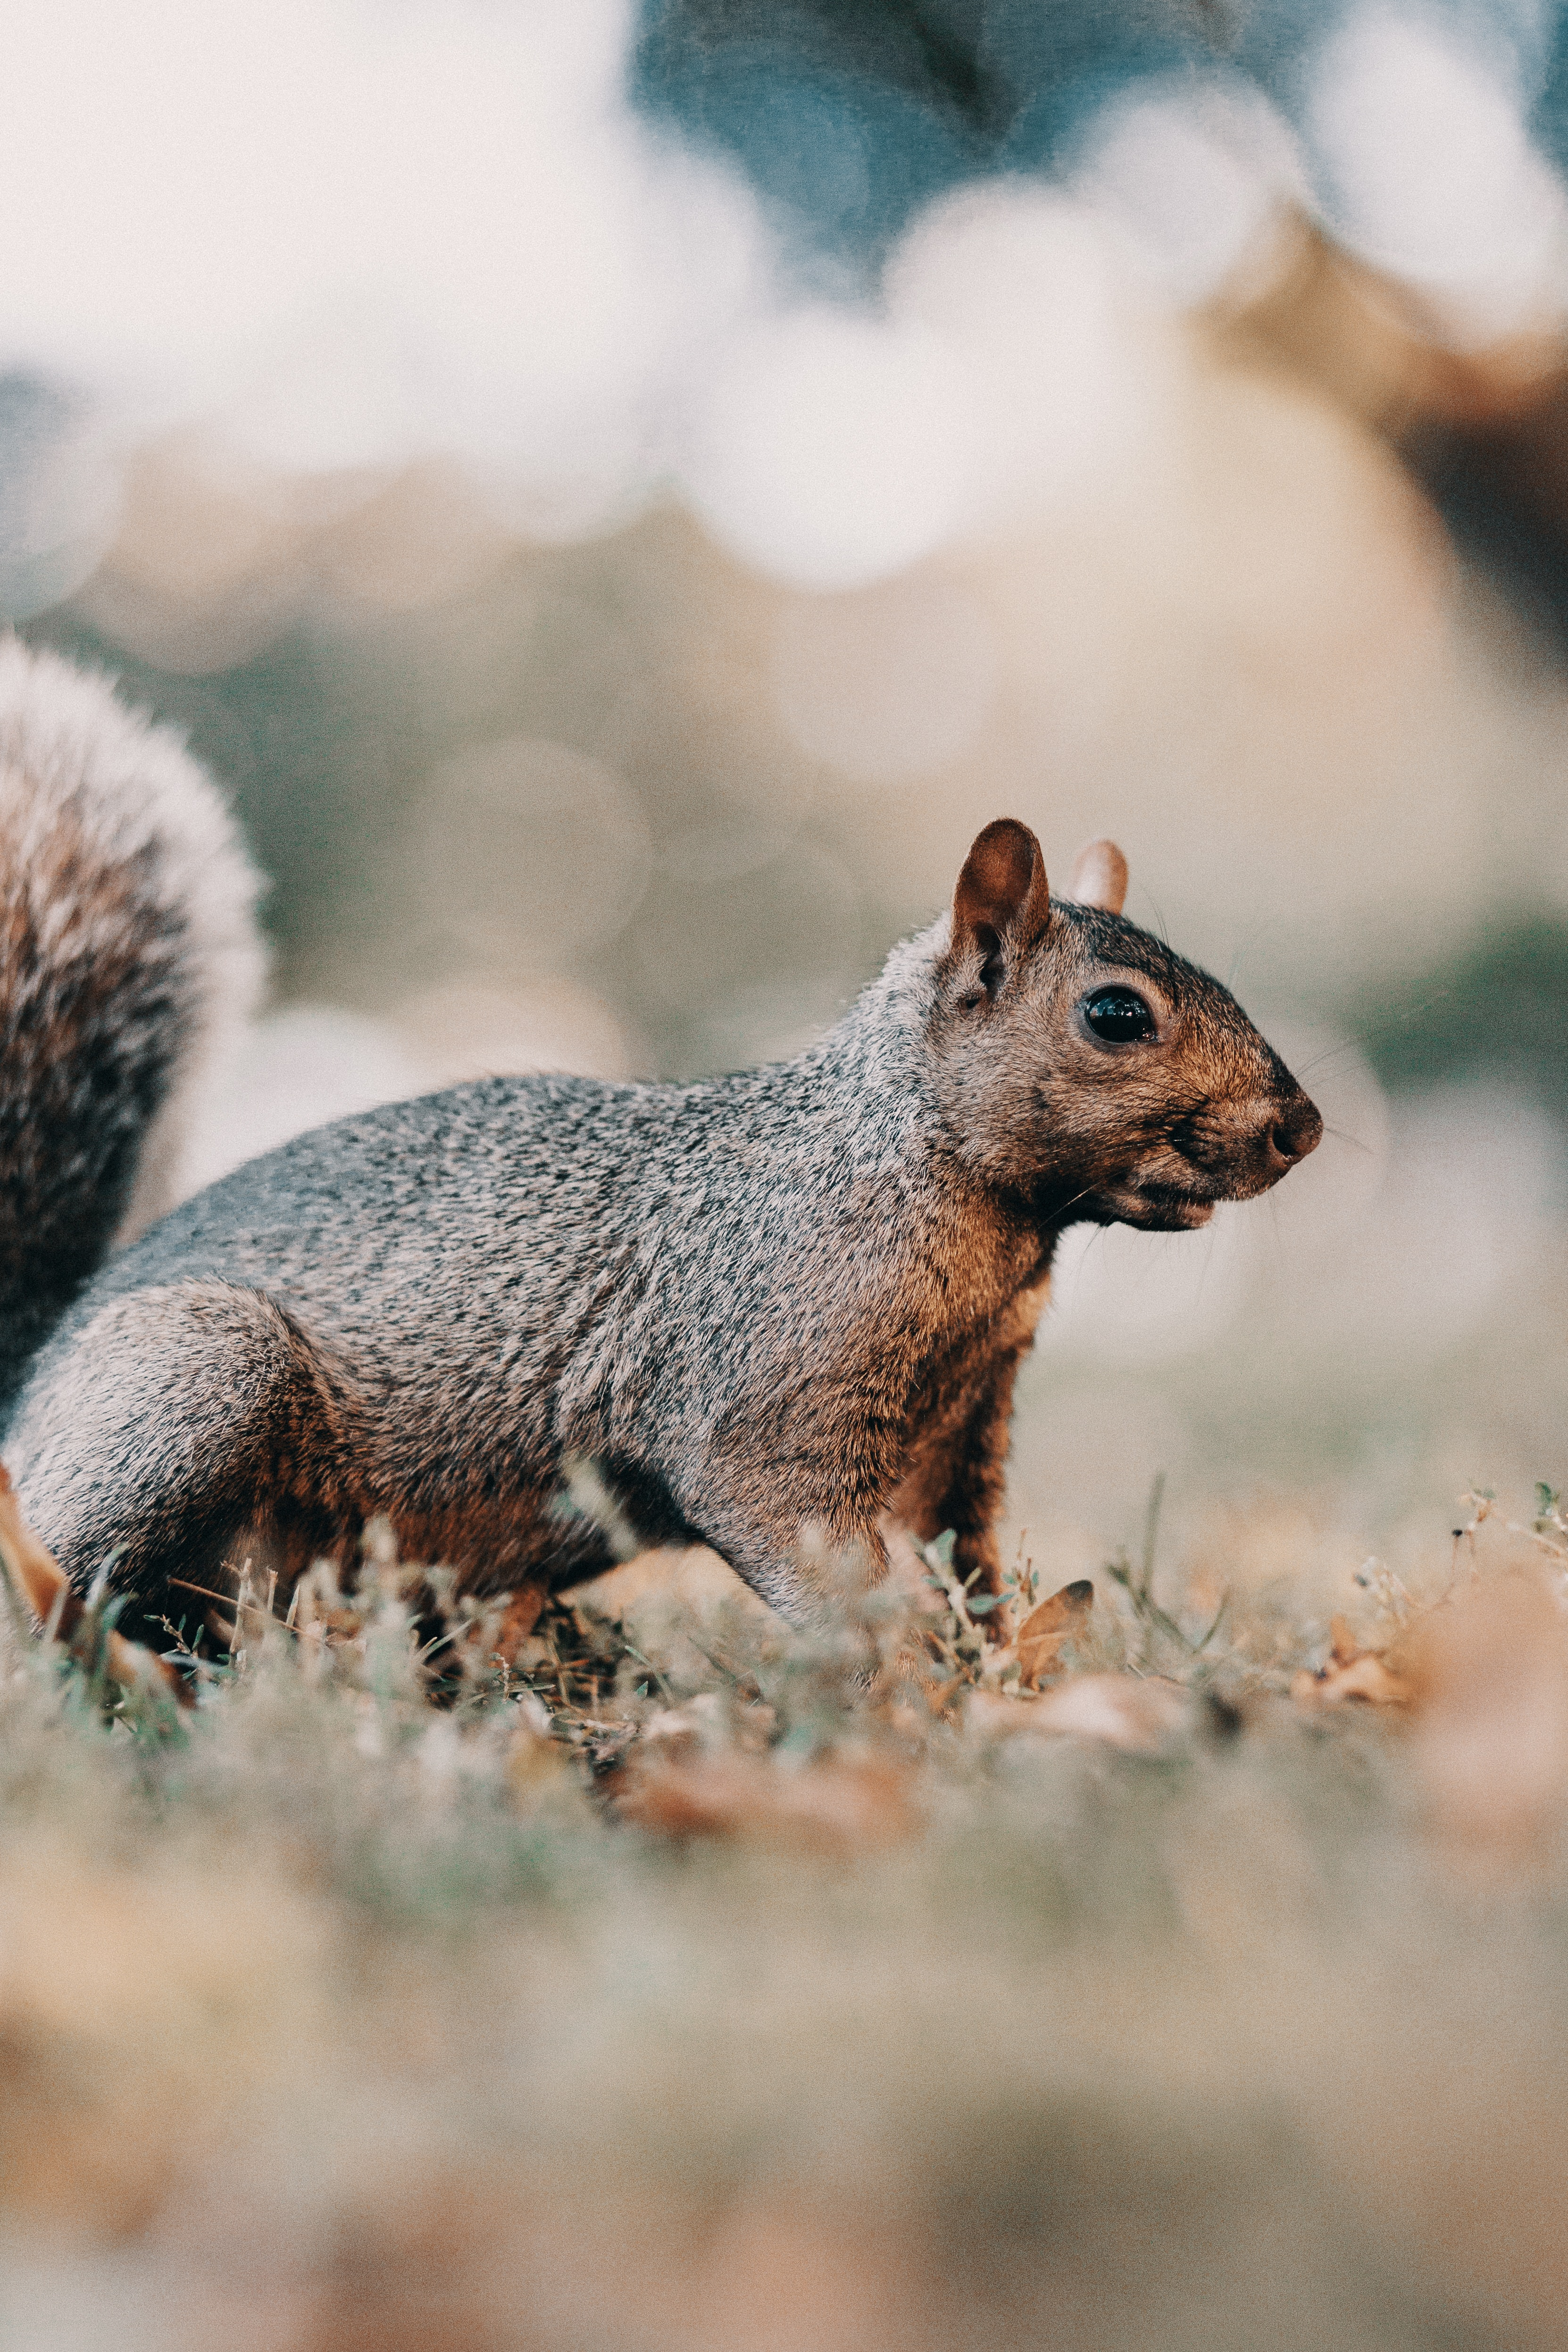 151065 download wallpaper Animals, Squirrel, Brown, Animal, Grass, Wildlife screensavers and pictures for free